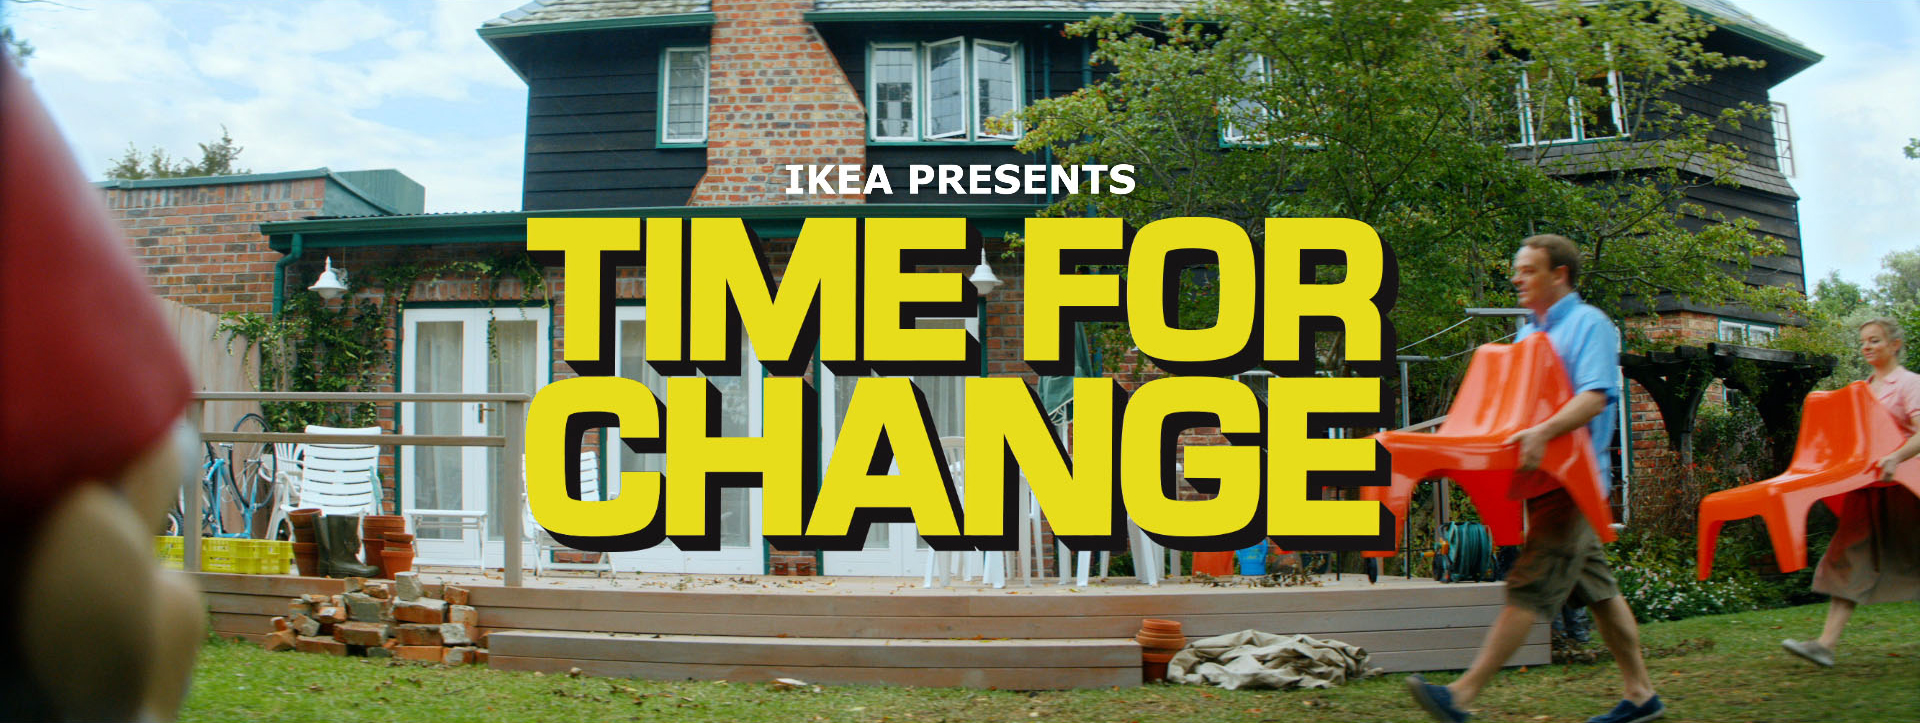 ikea_time_for_change